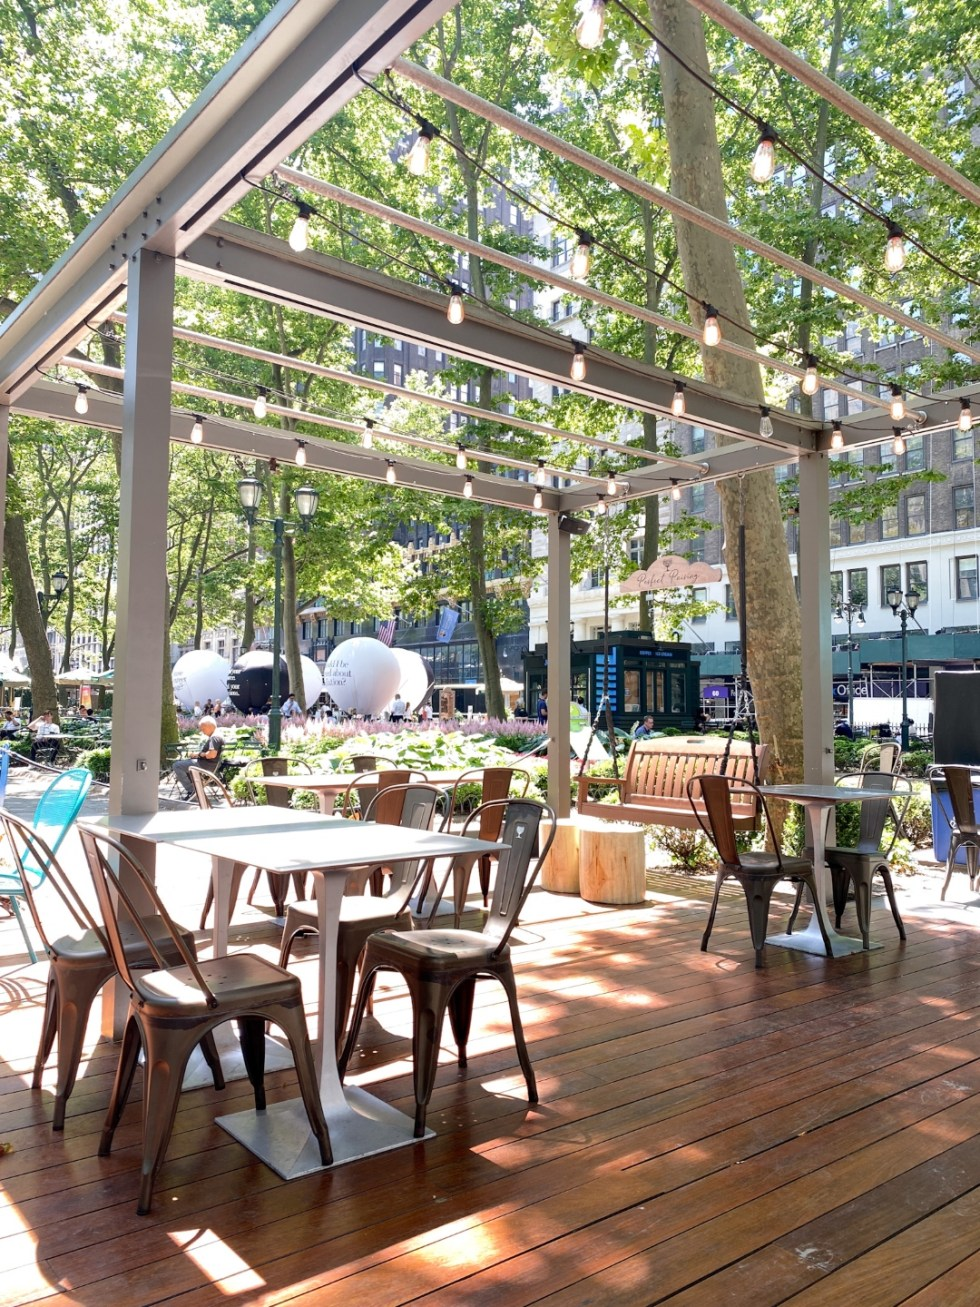 NYC Summer Weekend: Things to Do in NYC in the Summer - I'm Fixin' To - @imfixintoblog   NYC Summer Weekend by popular NC travel blog, I'm Fixin' To: image of Bryant Park cafe.